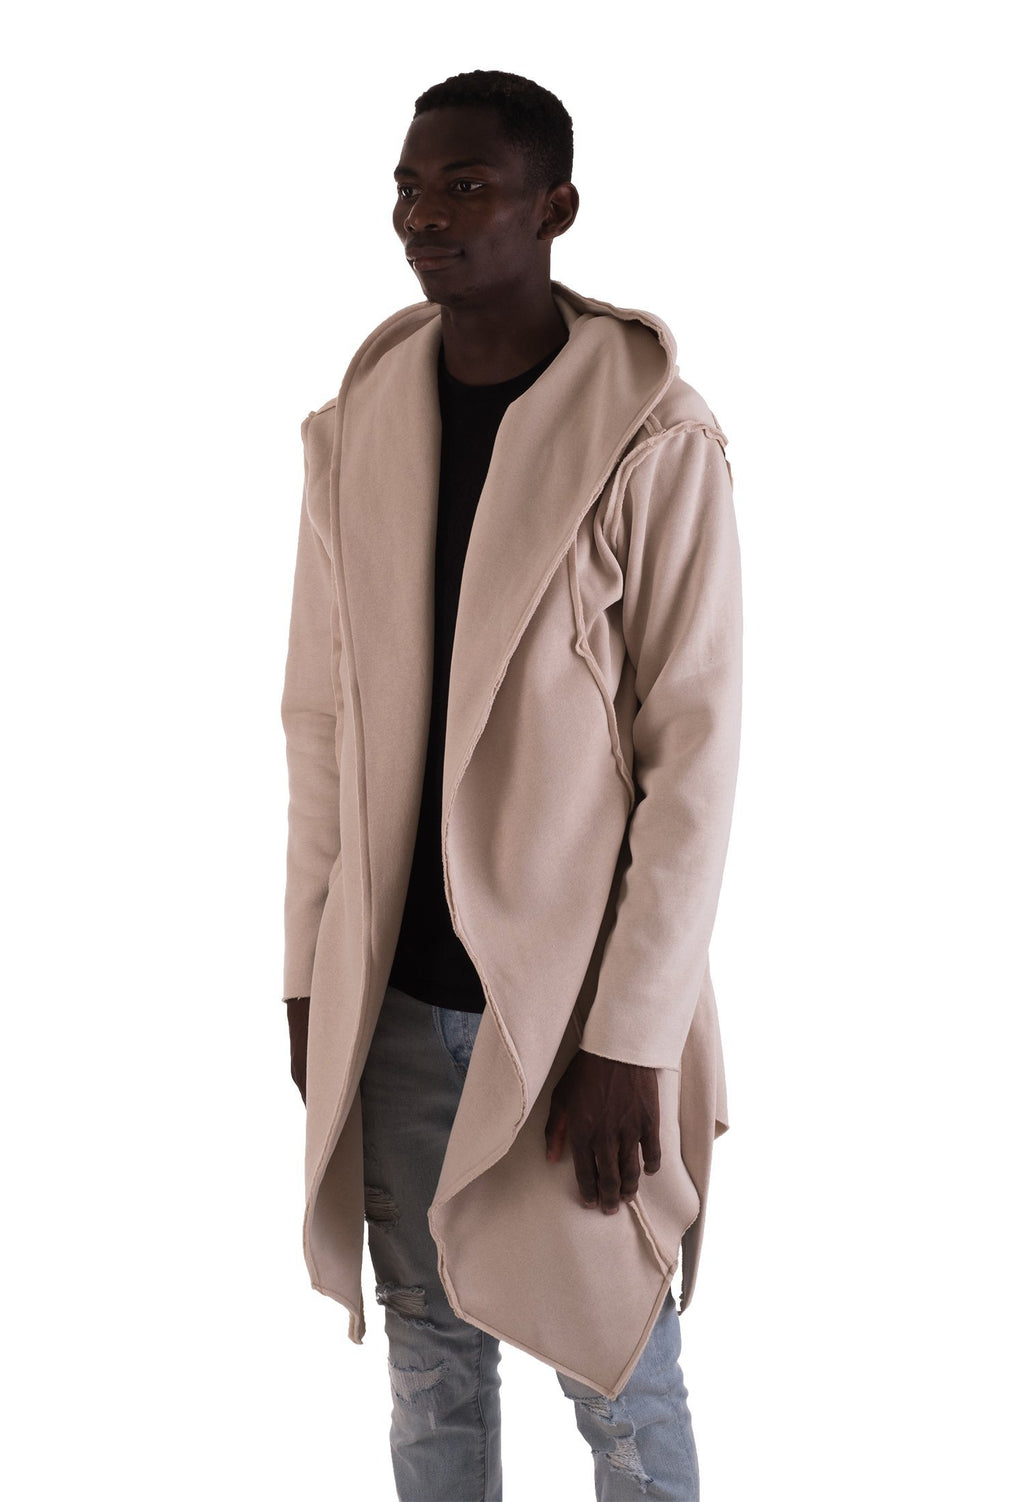 TheG Man Designer Cardigan 2.0 // wheat